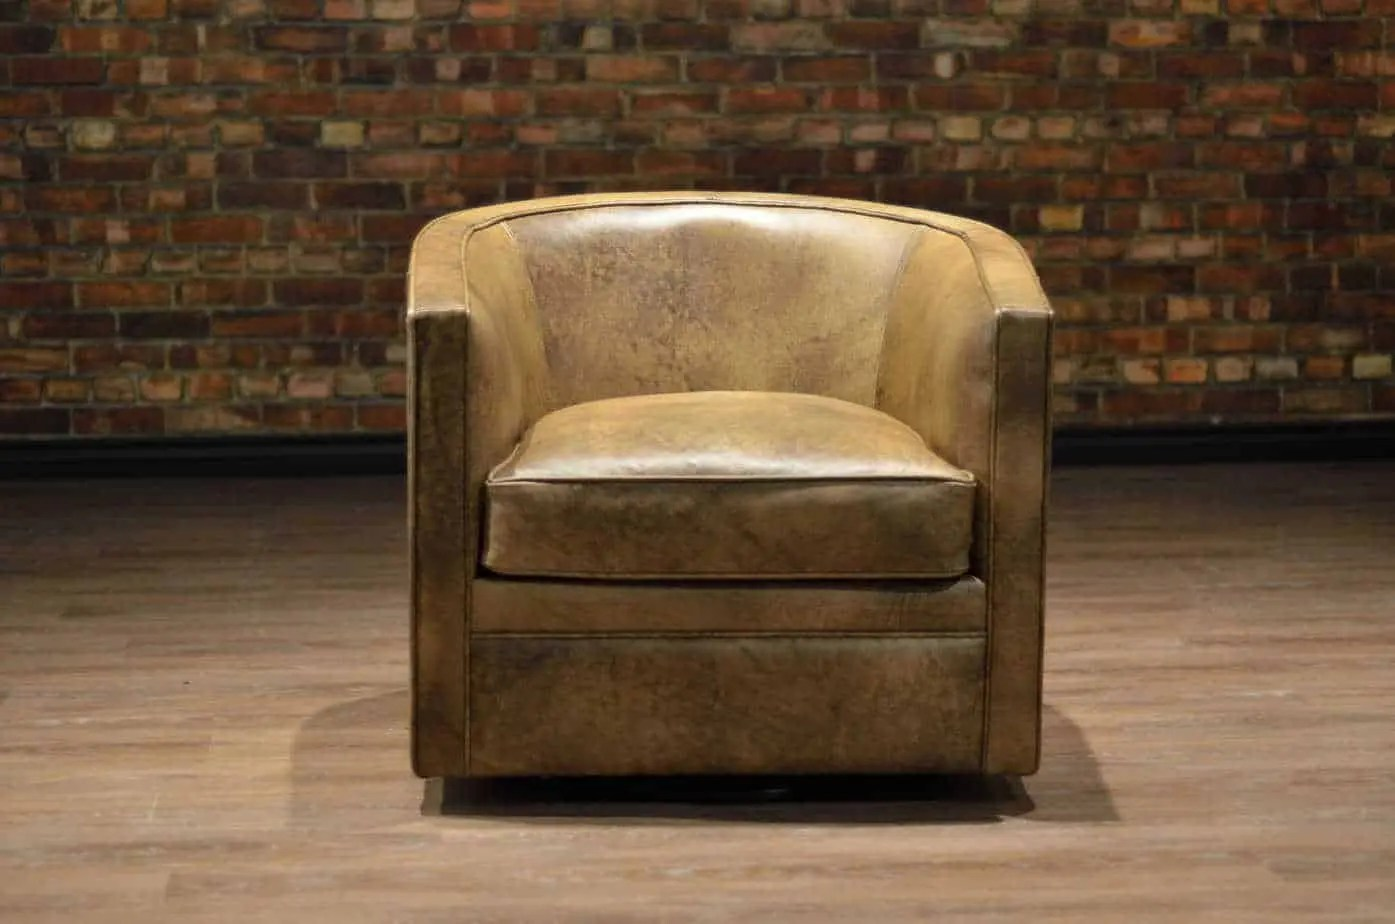 Leather Recliner Chairs Canada The Tub Leather Swivel Chair Collection Canada 39s Boss